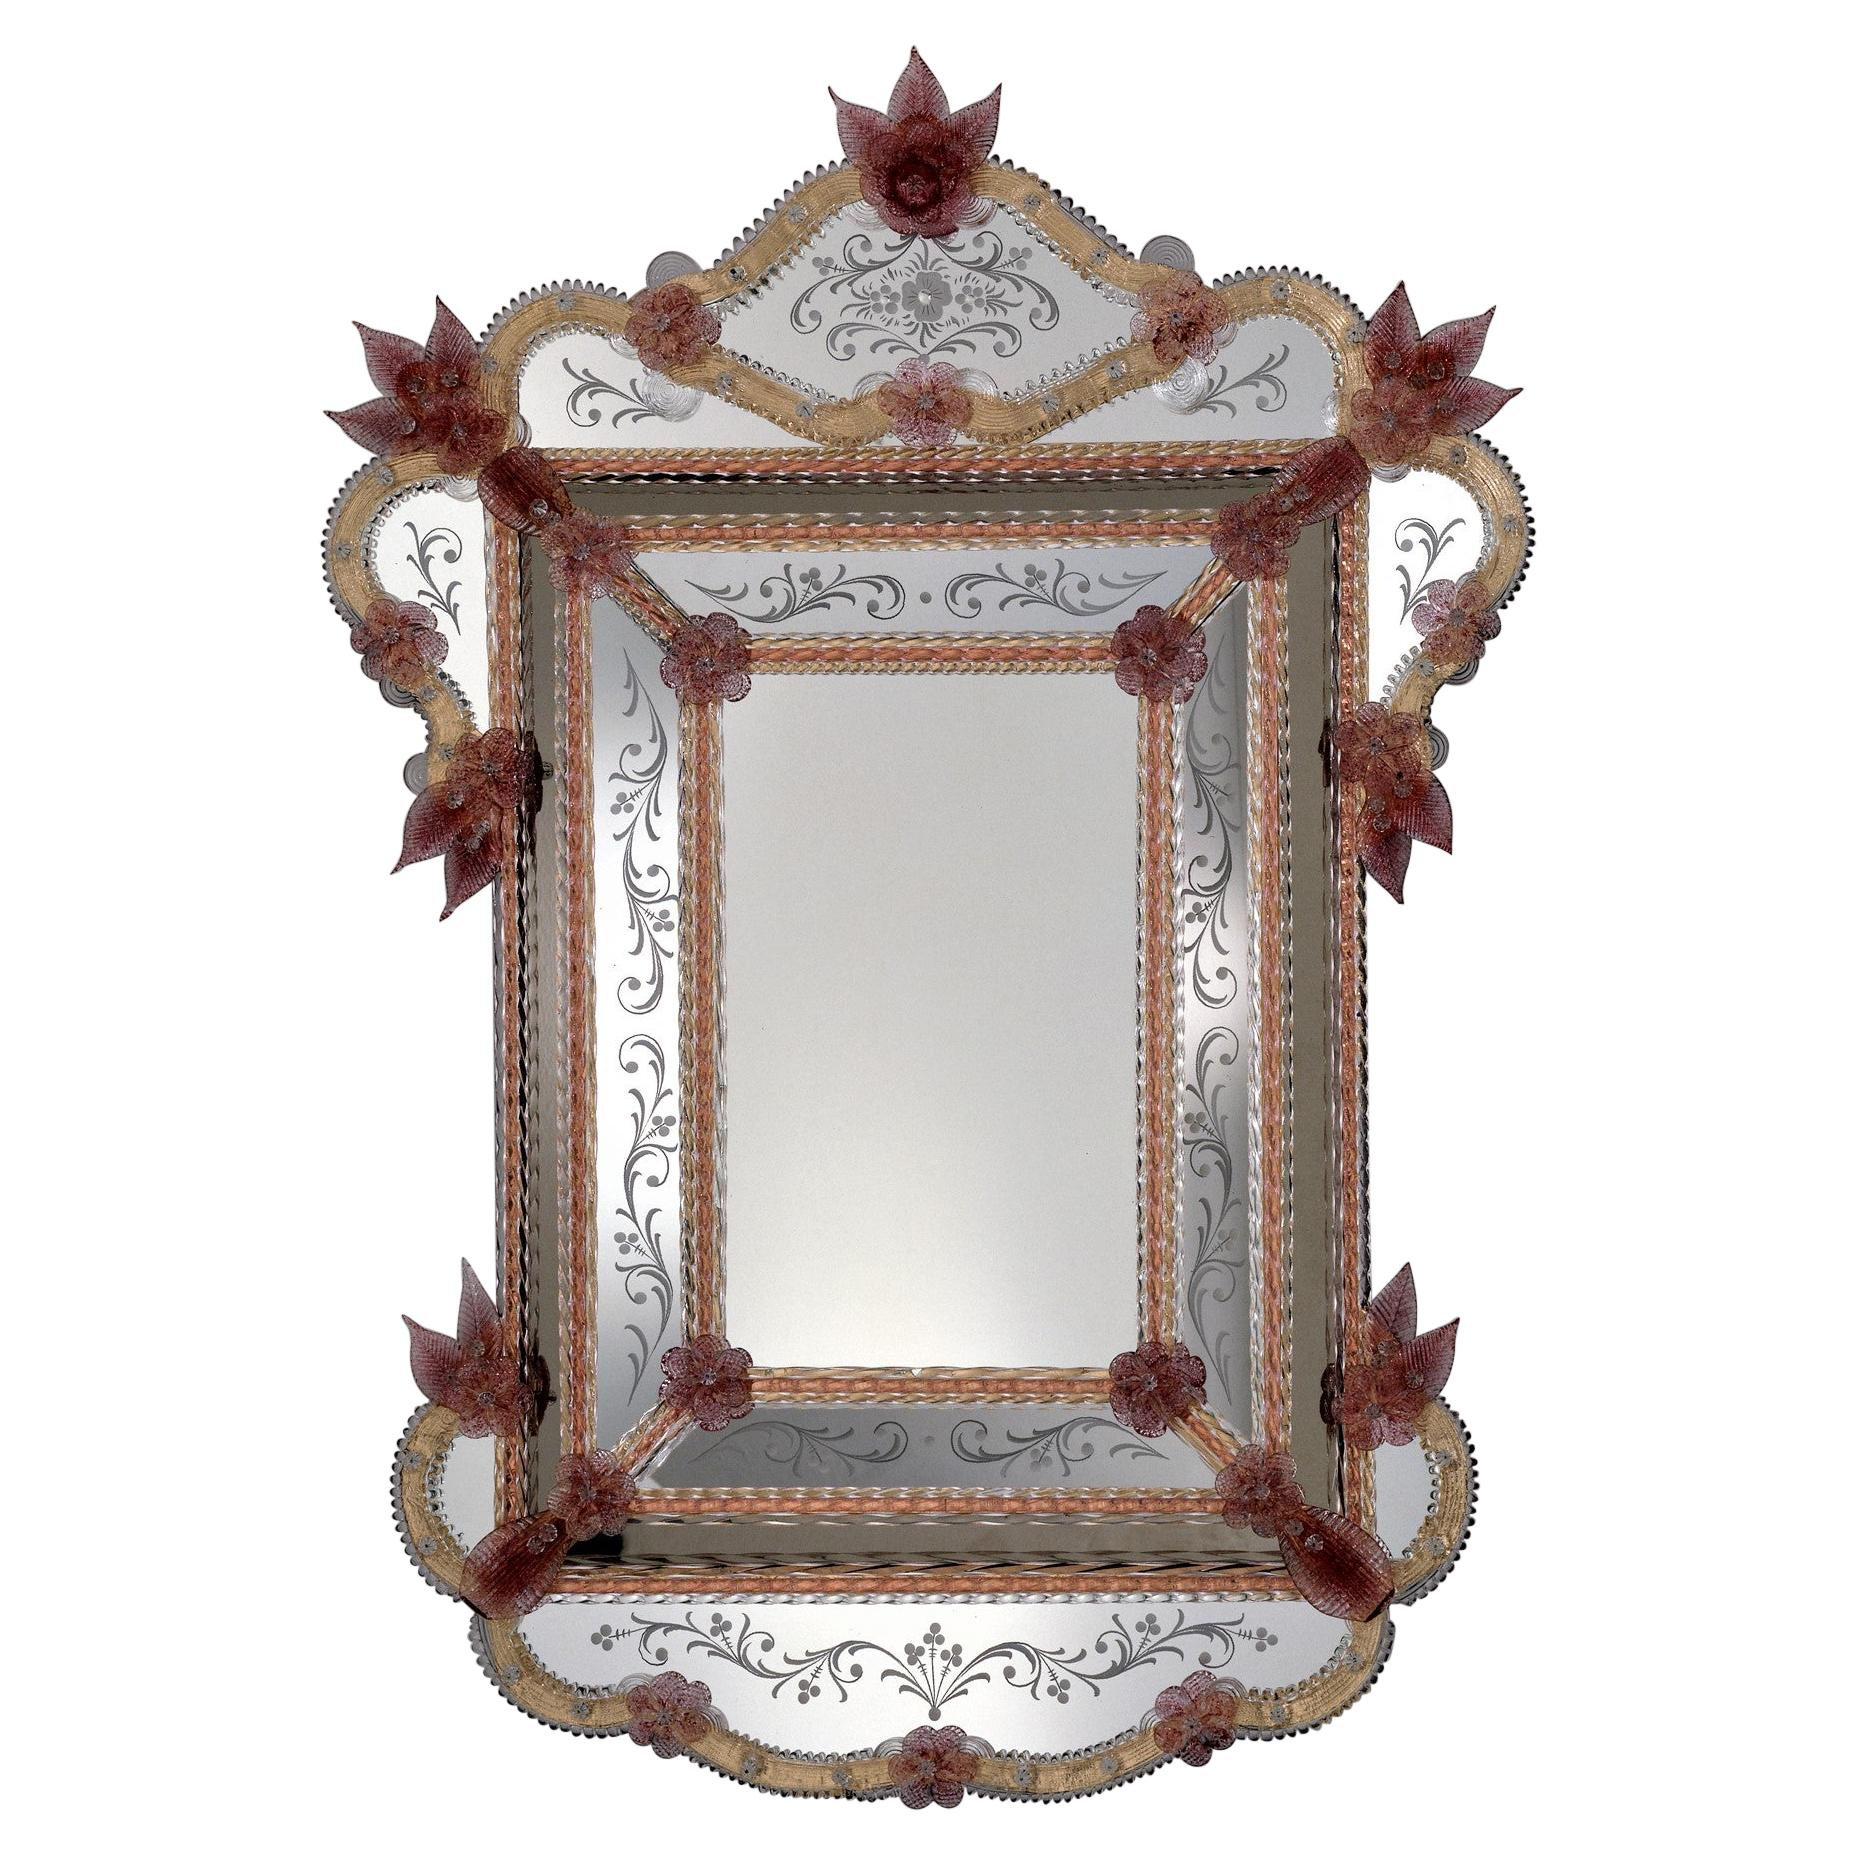 """""""Tiepolo"""", Murano Glass Mirror in Venetian Style by Fratelli Tosi, Made in Italy"""